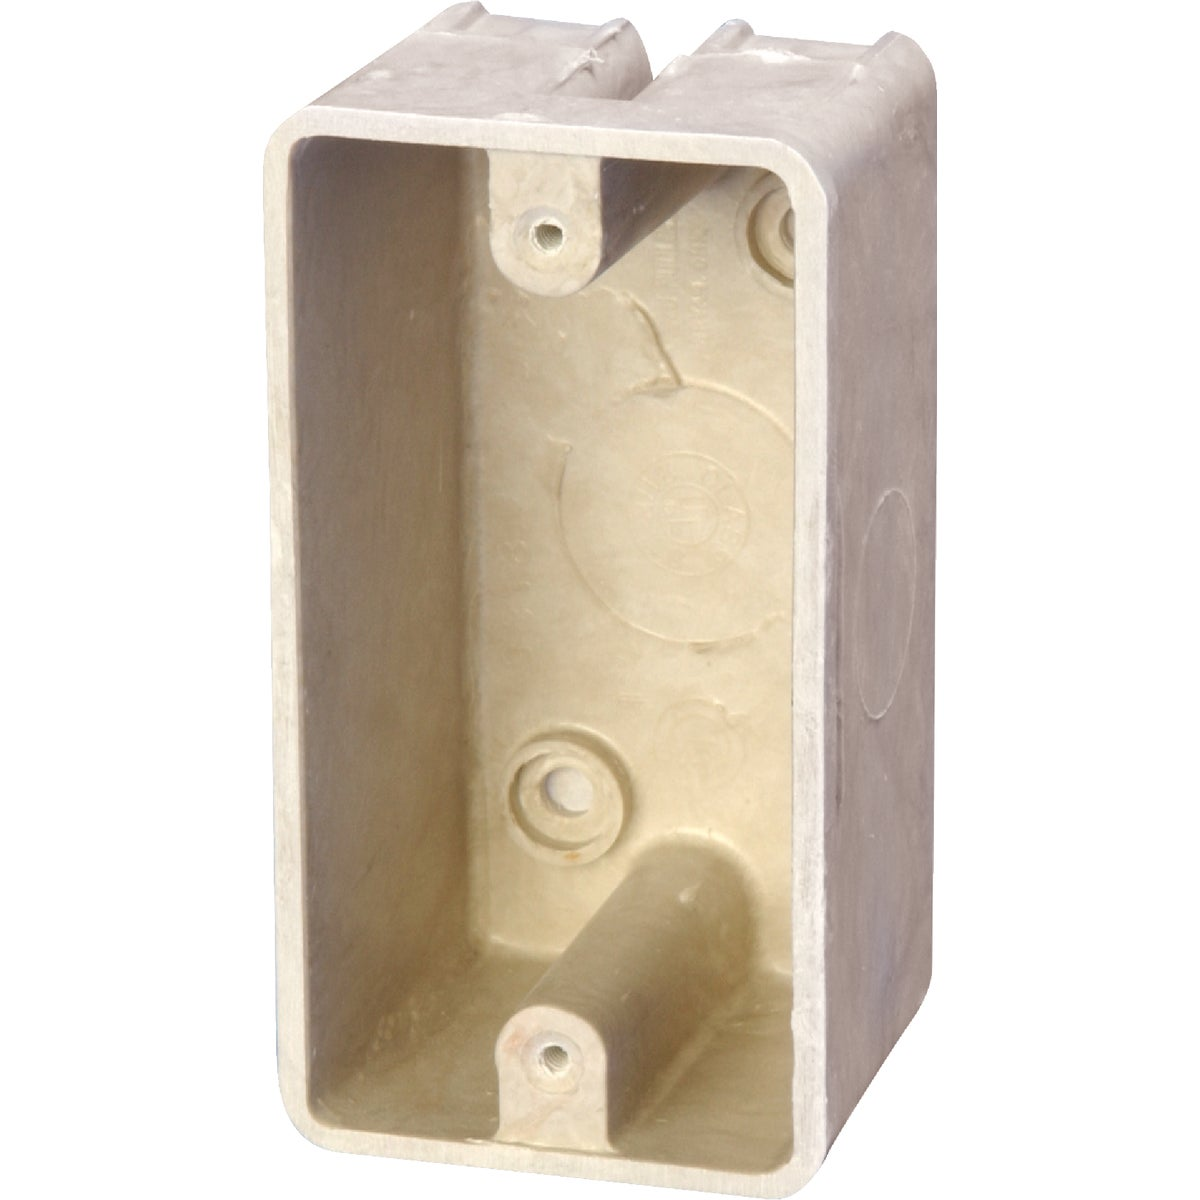 FIBERGLASS HANDY BOX - 9318 by Allied Moulded